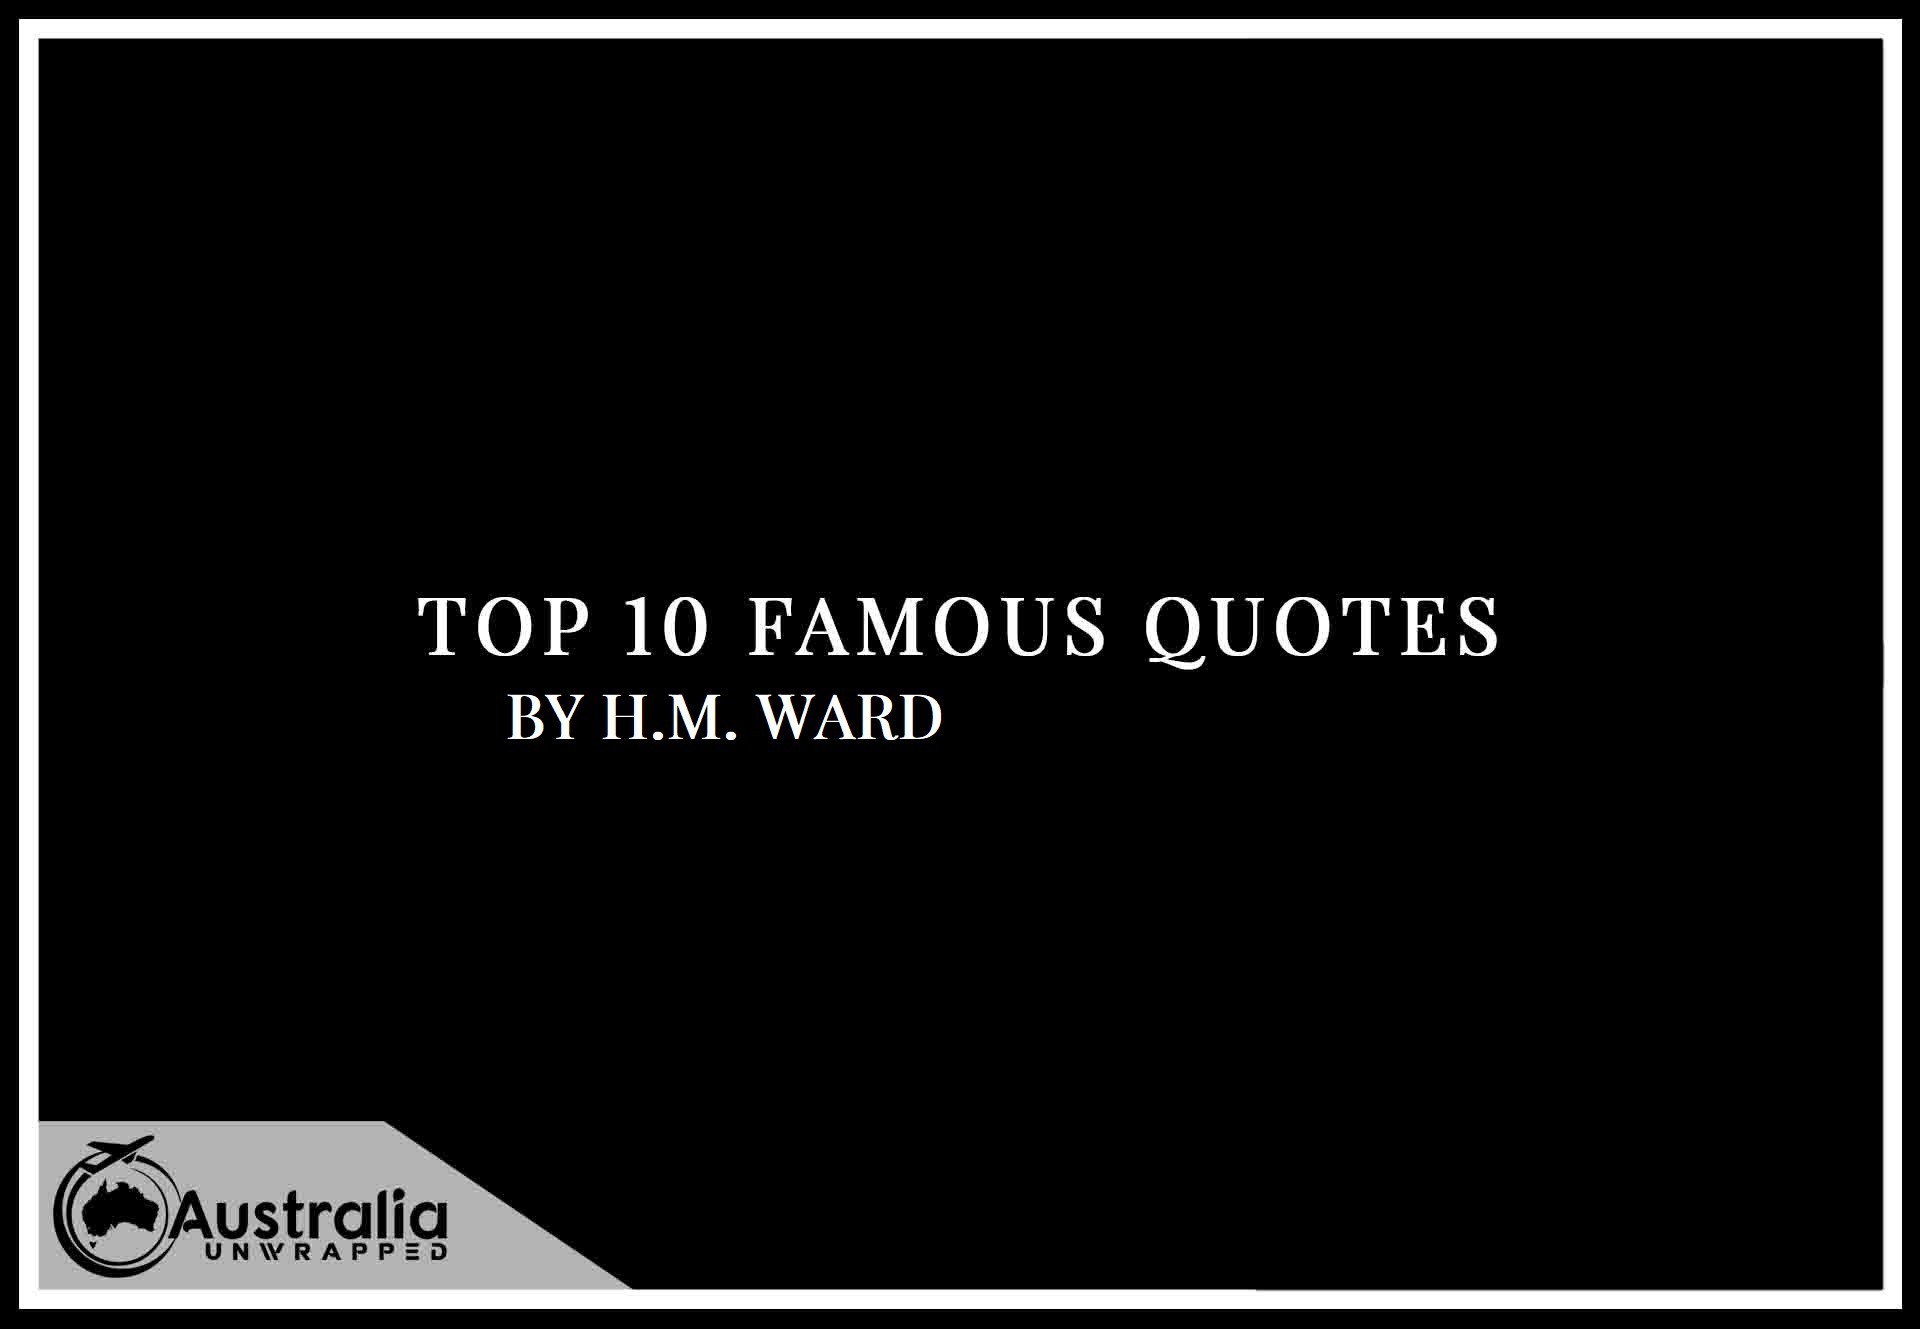 Top 10 Famous Quotes by Author H.M. Ward